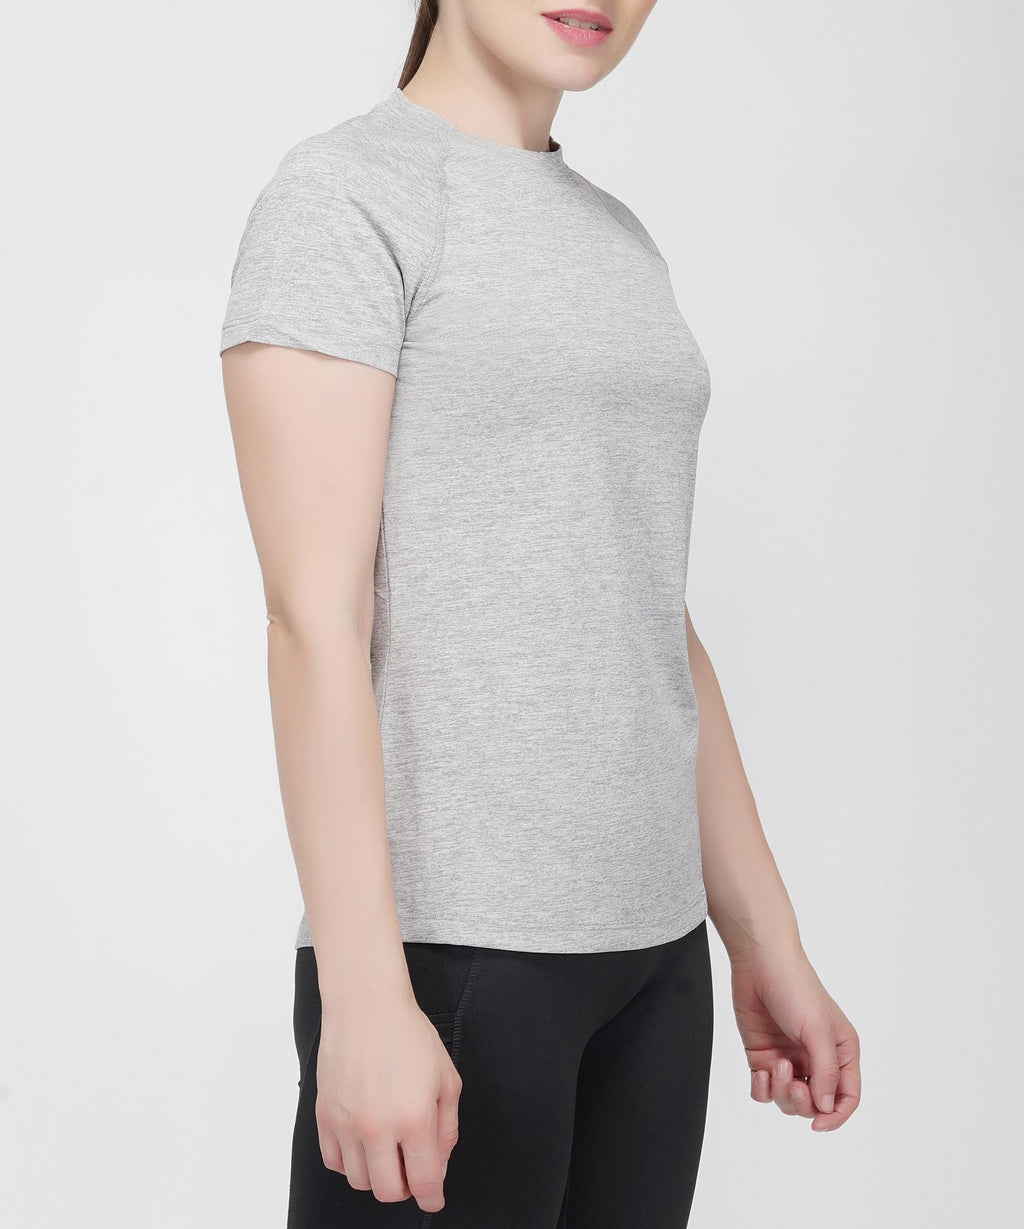 Move Raglan Gym T-shirt For Women - Grey Melange